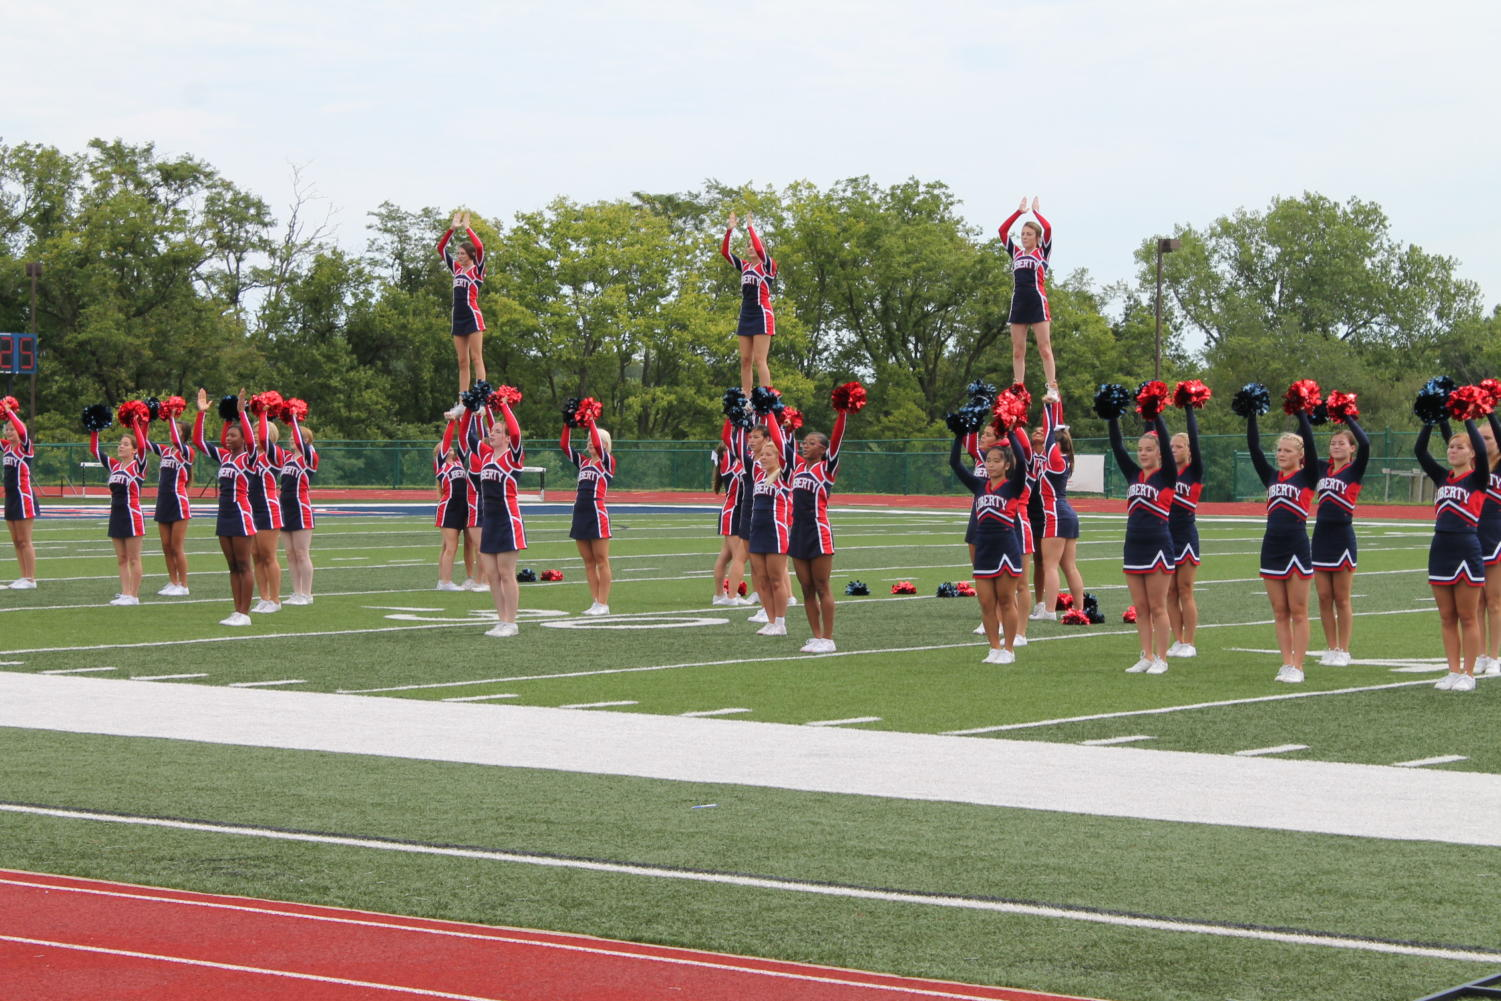 Cheerleaders+do+an+extension+during+their+routine.+